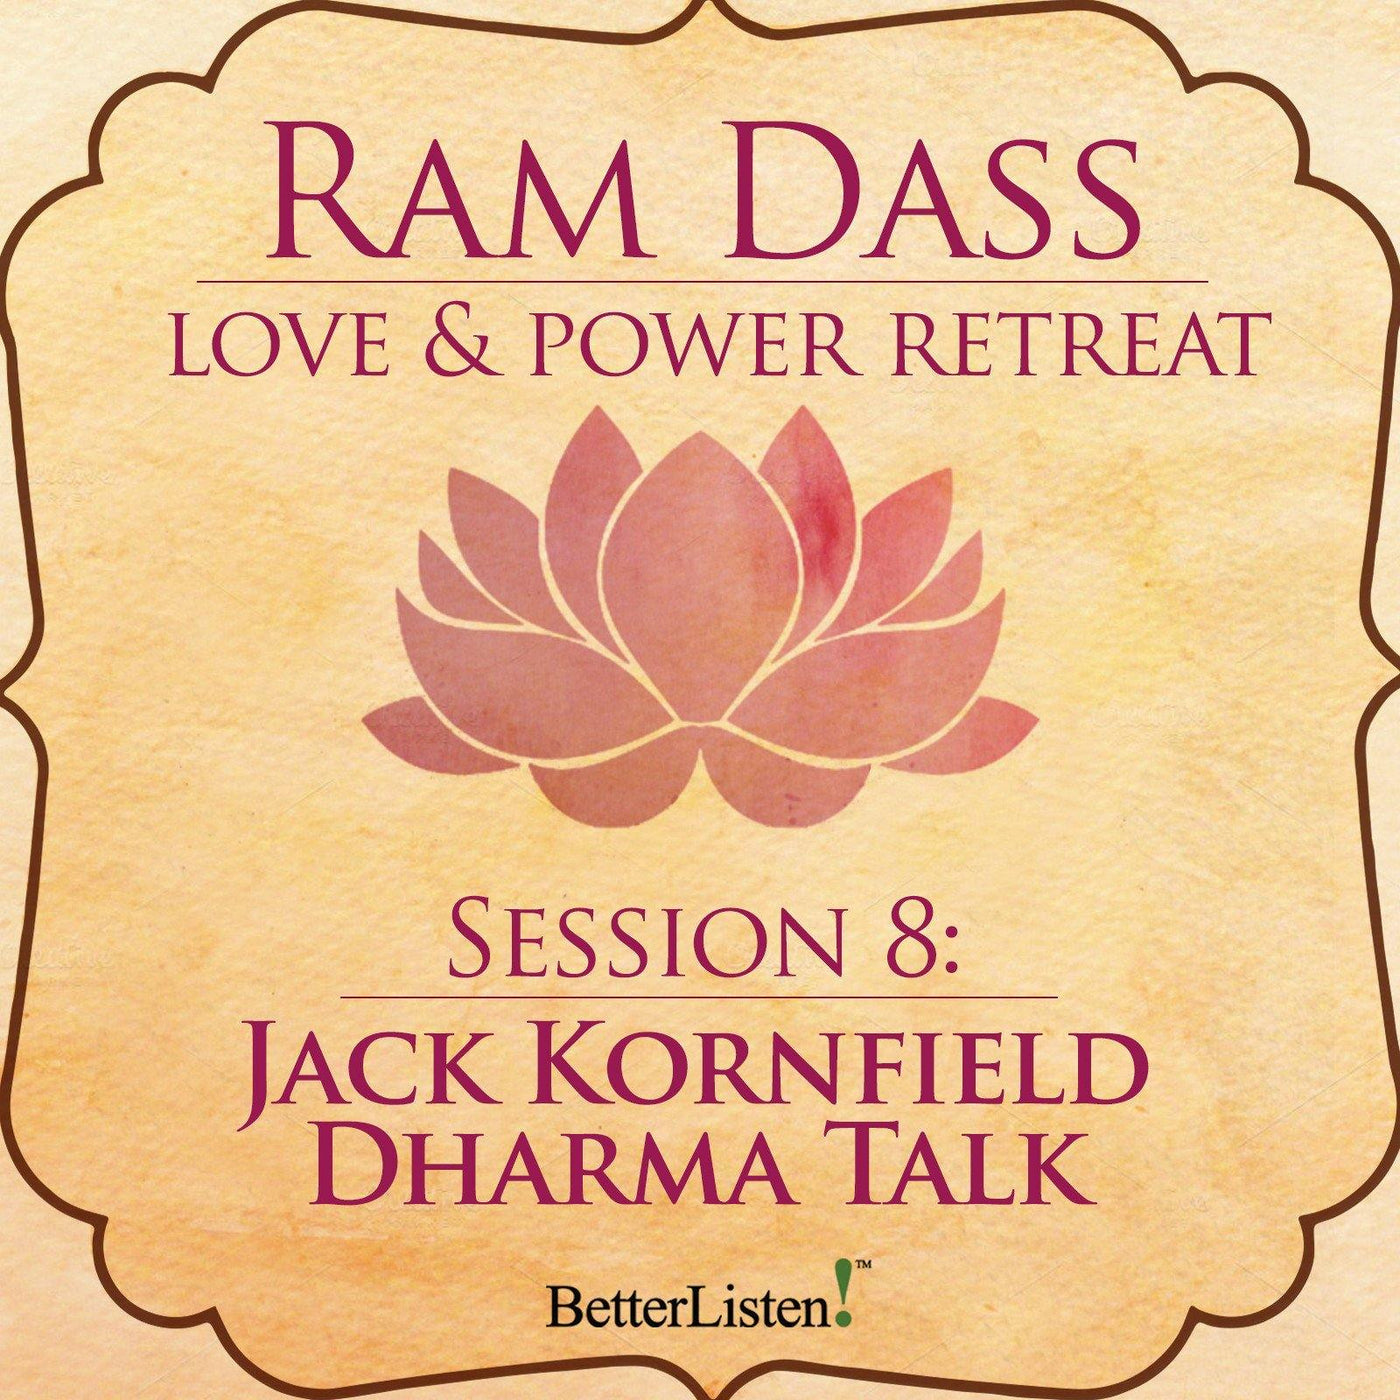 Jack Kornfield Dharma Talk from the Love and Power Retreat